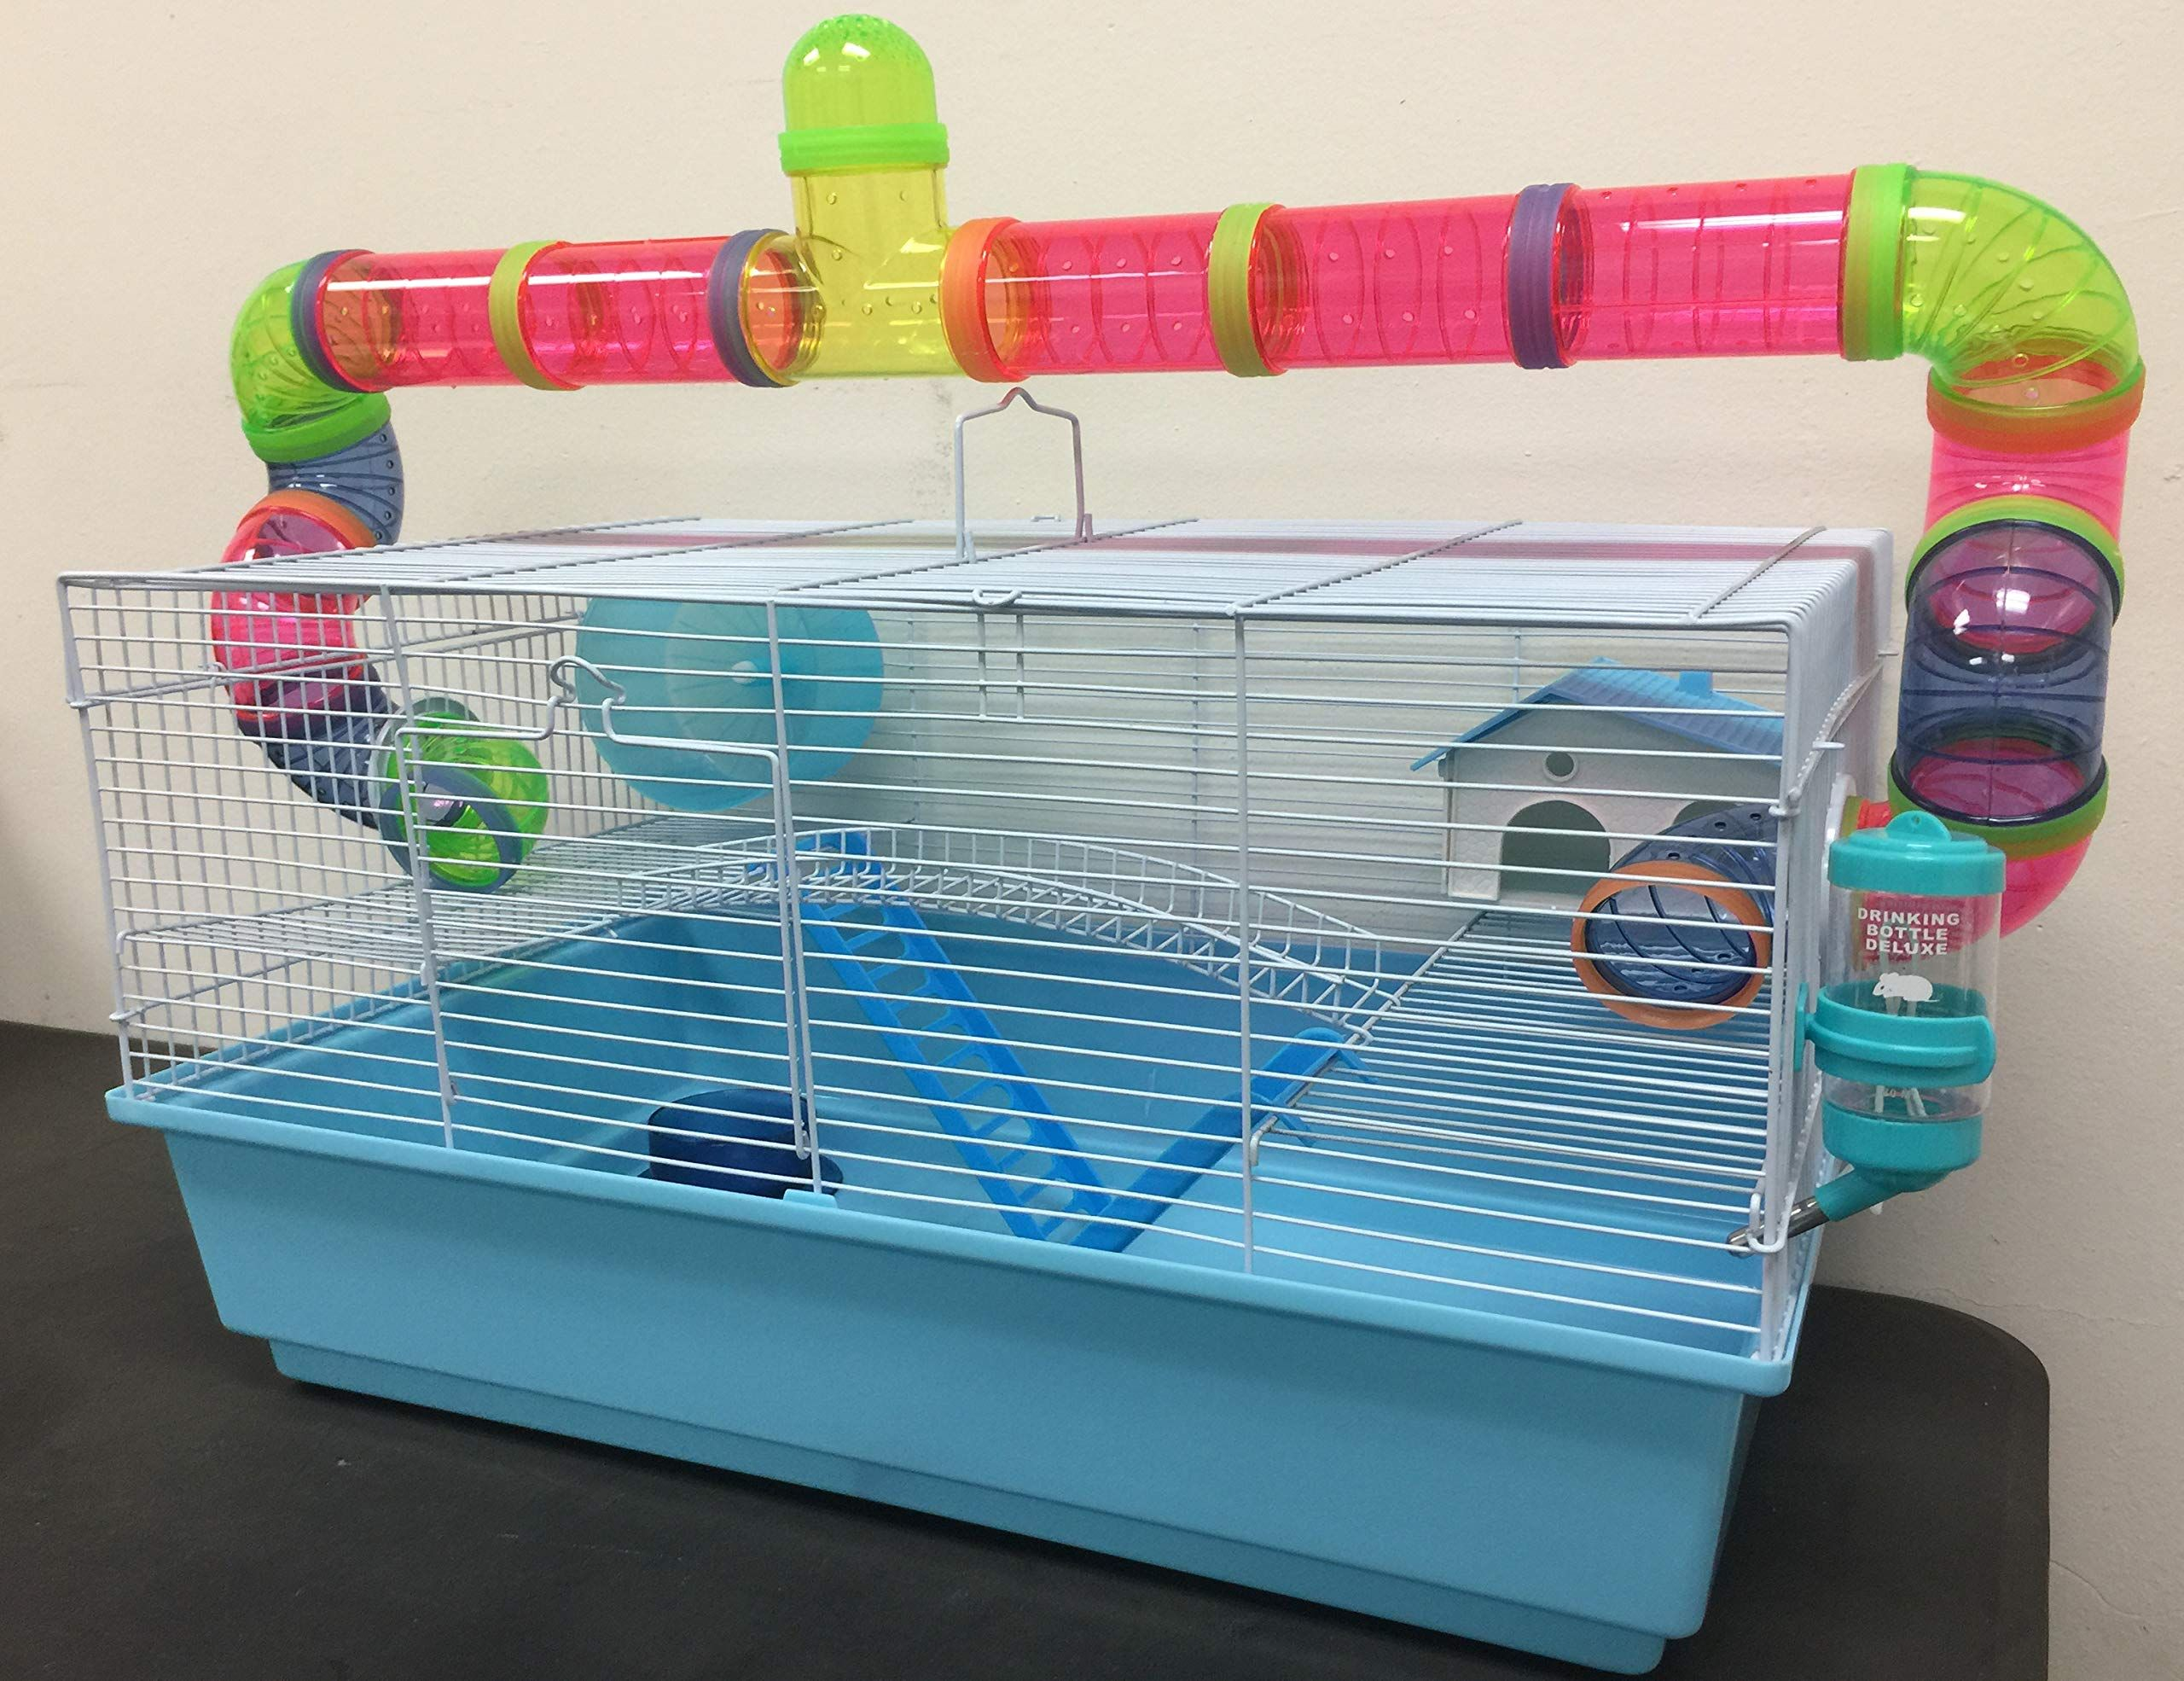 New Large Long Crossing Tube Habitat Hamster Rodent Gerbil Mouse